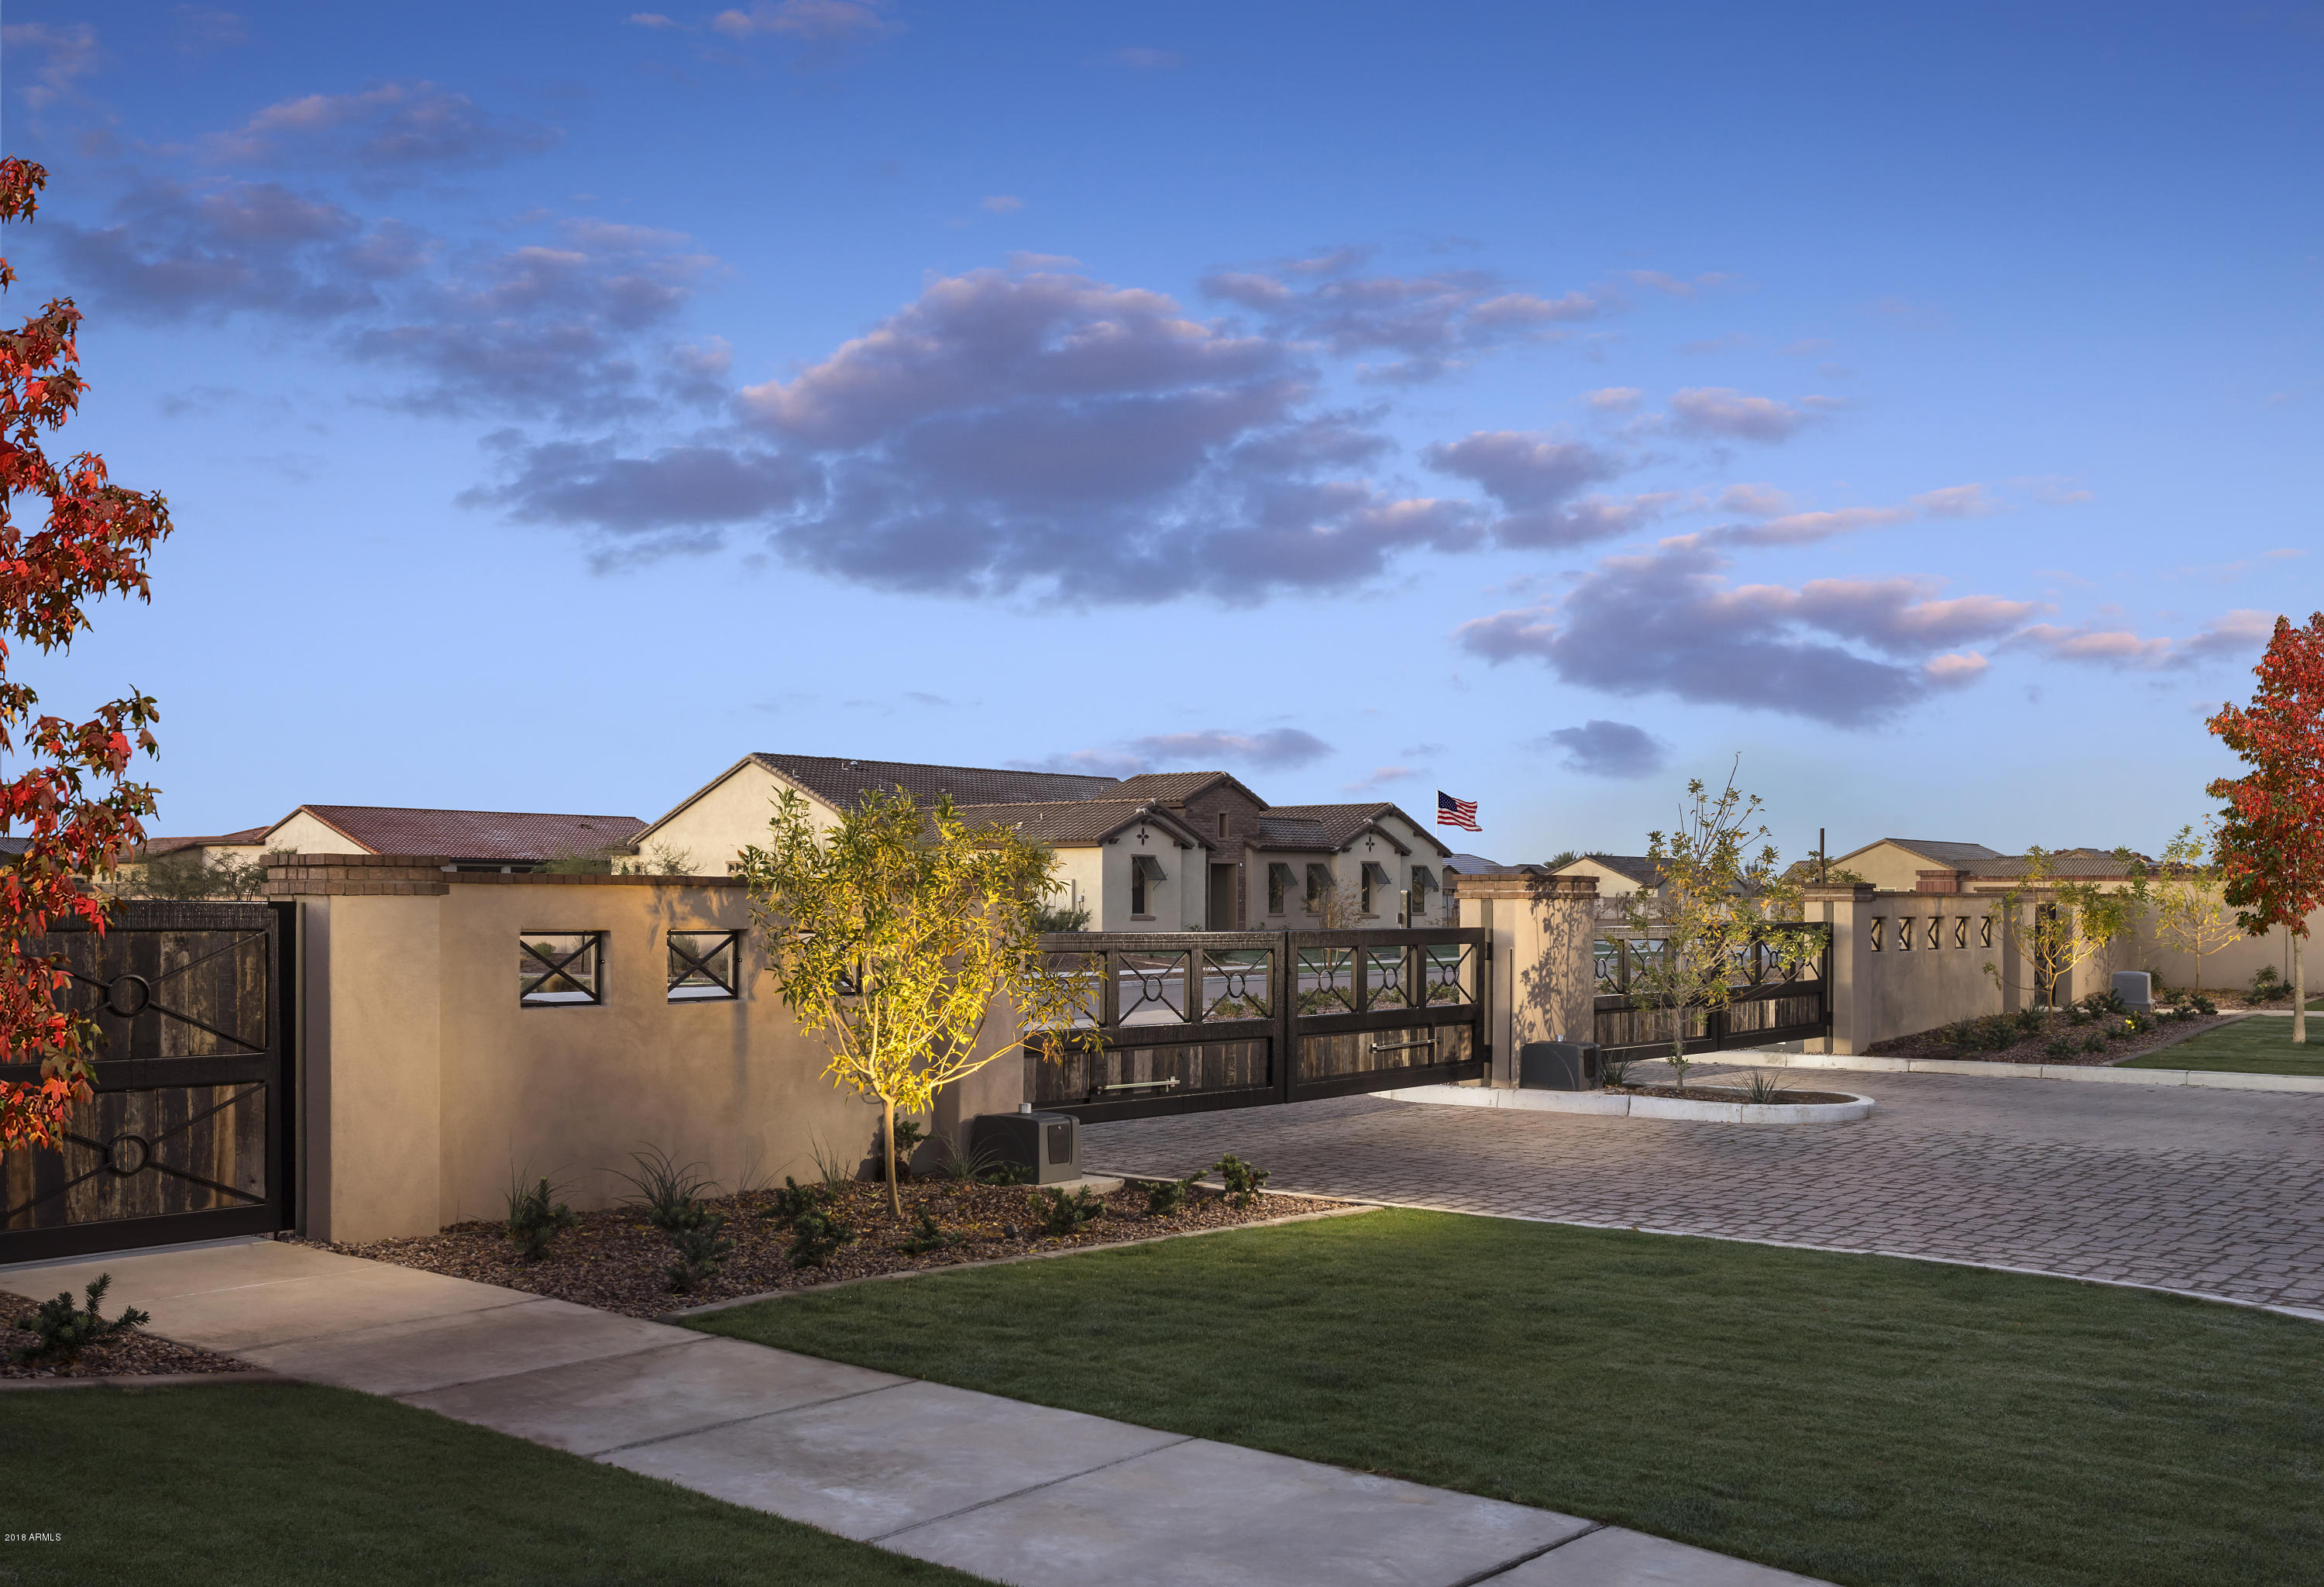 MLS 5896883 17673 E BRONCO Drive Unit 20, Queen Creek, AZ 85142 Queen Creek AZ Gated